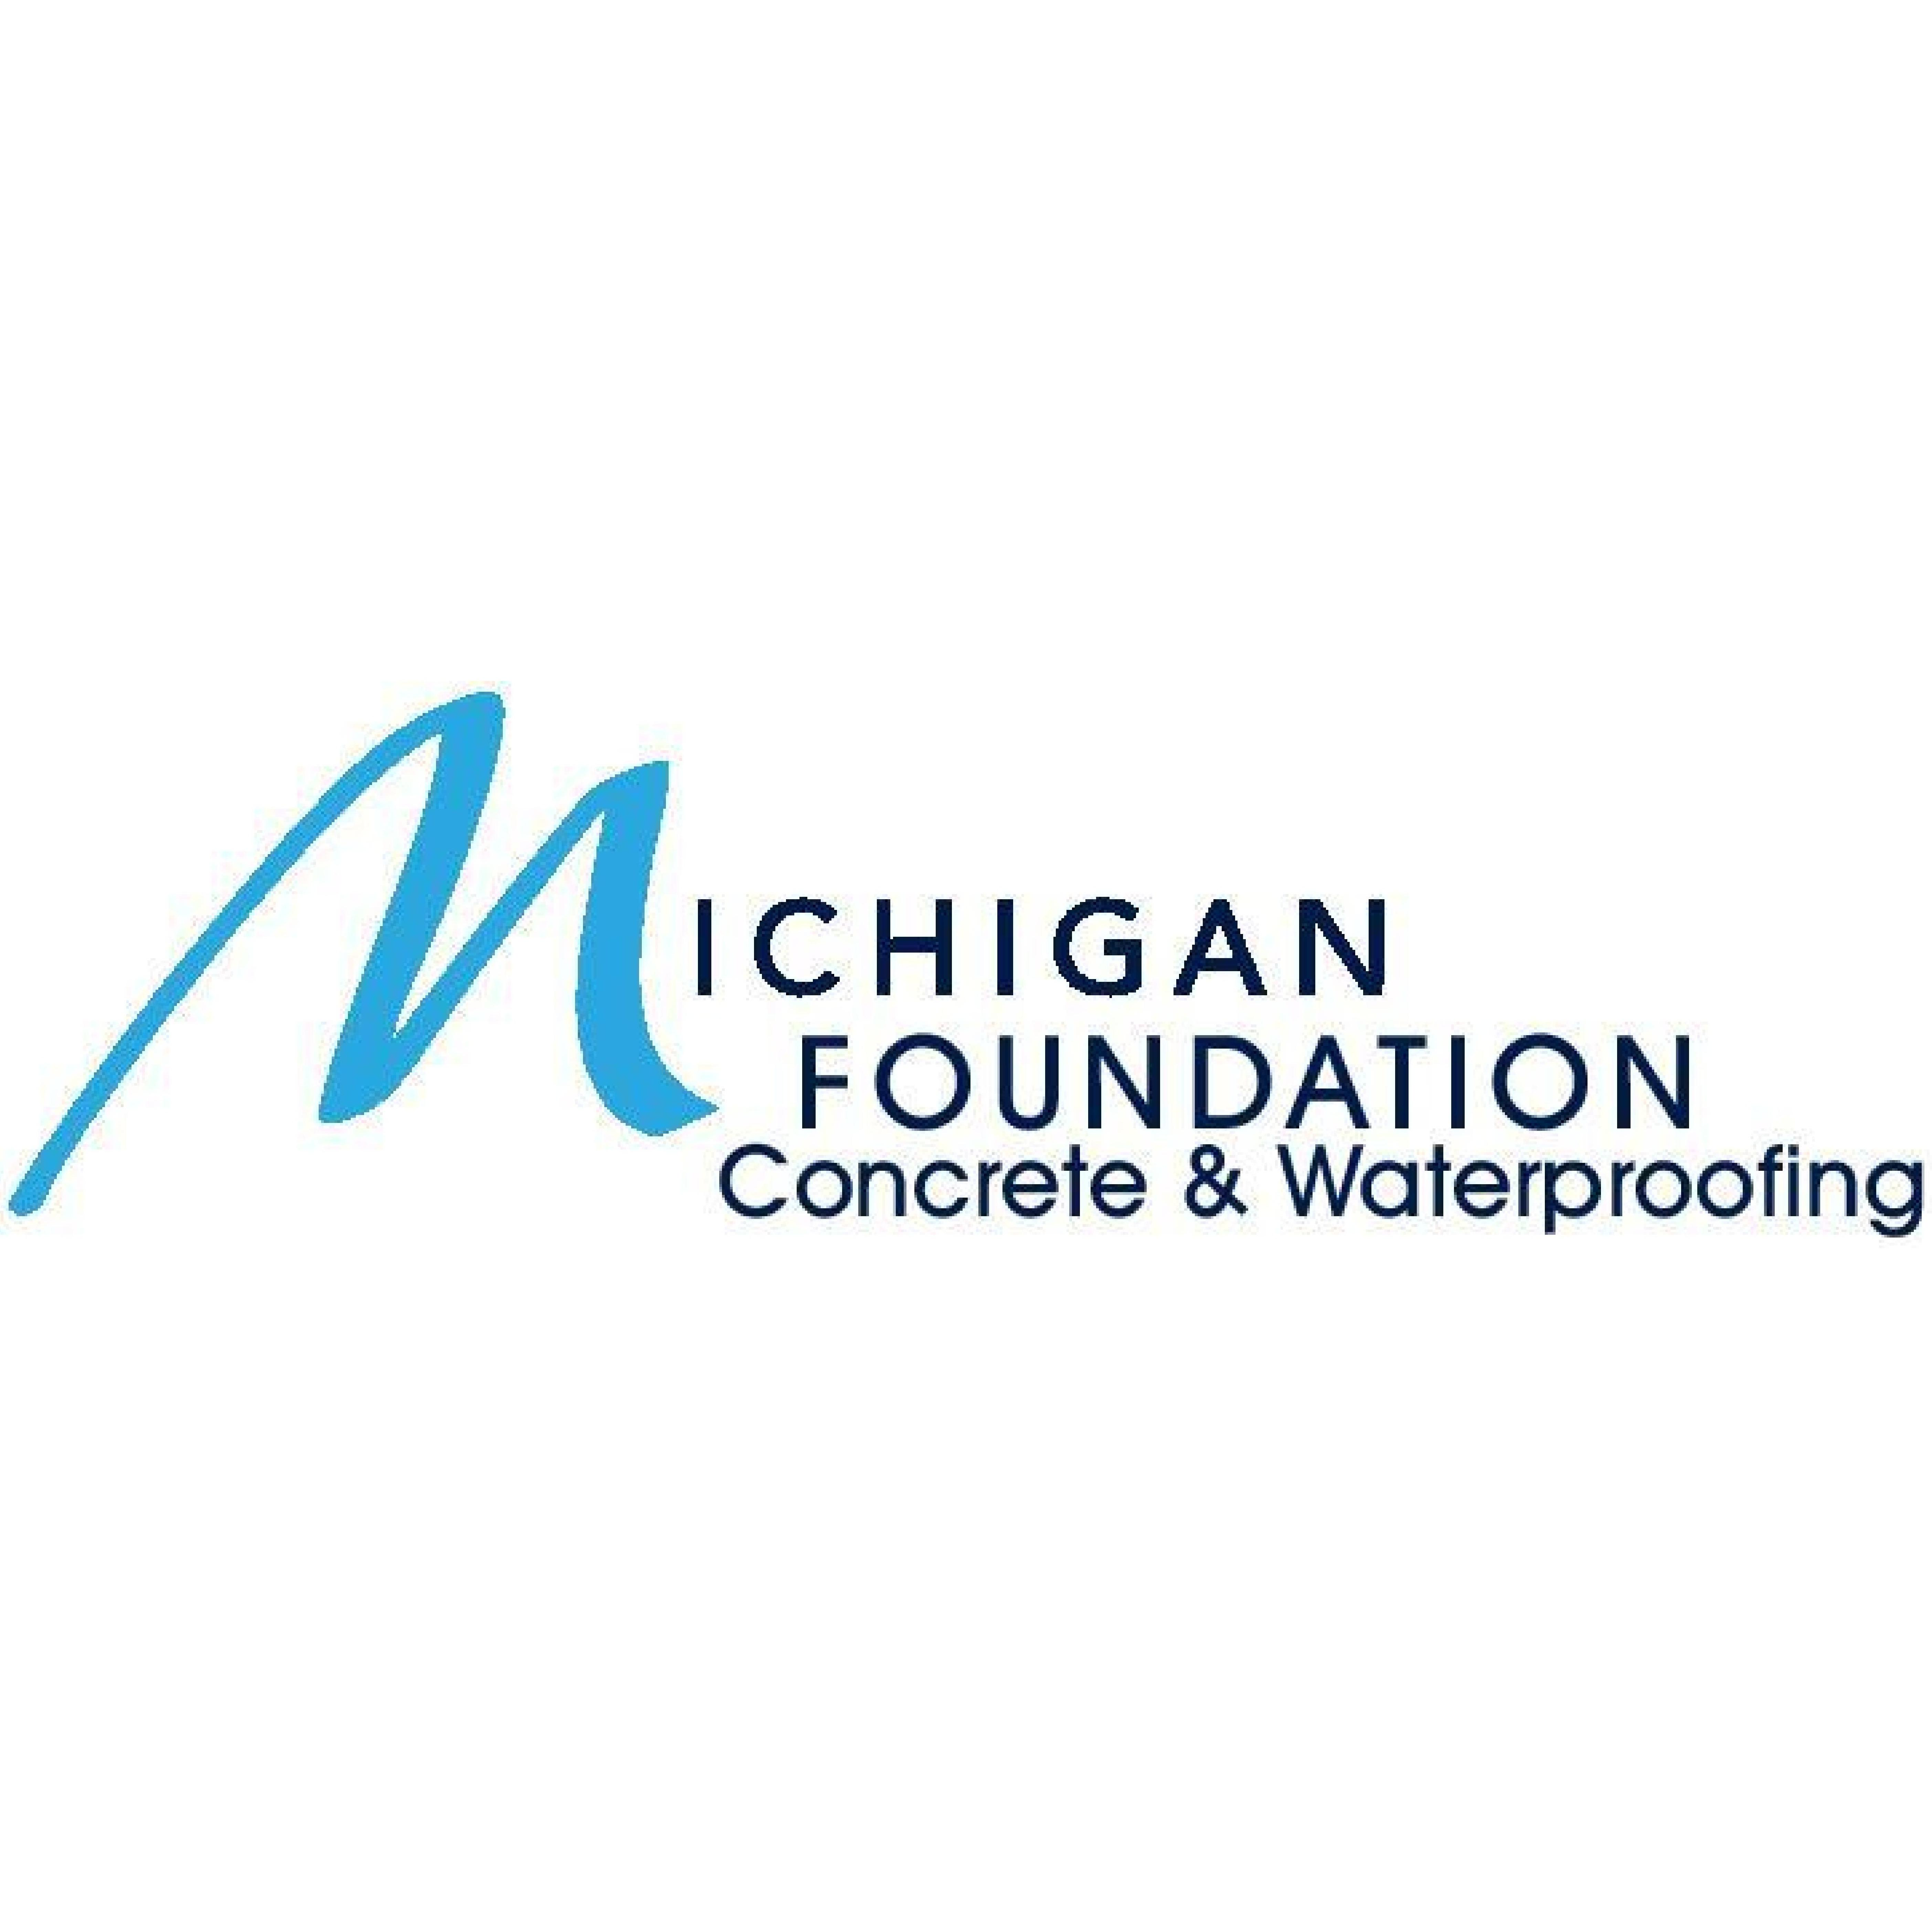 Michigan Foundation Concrete & Waterproofing - Albion, MI - Concrete, Brick & Stone